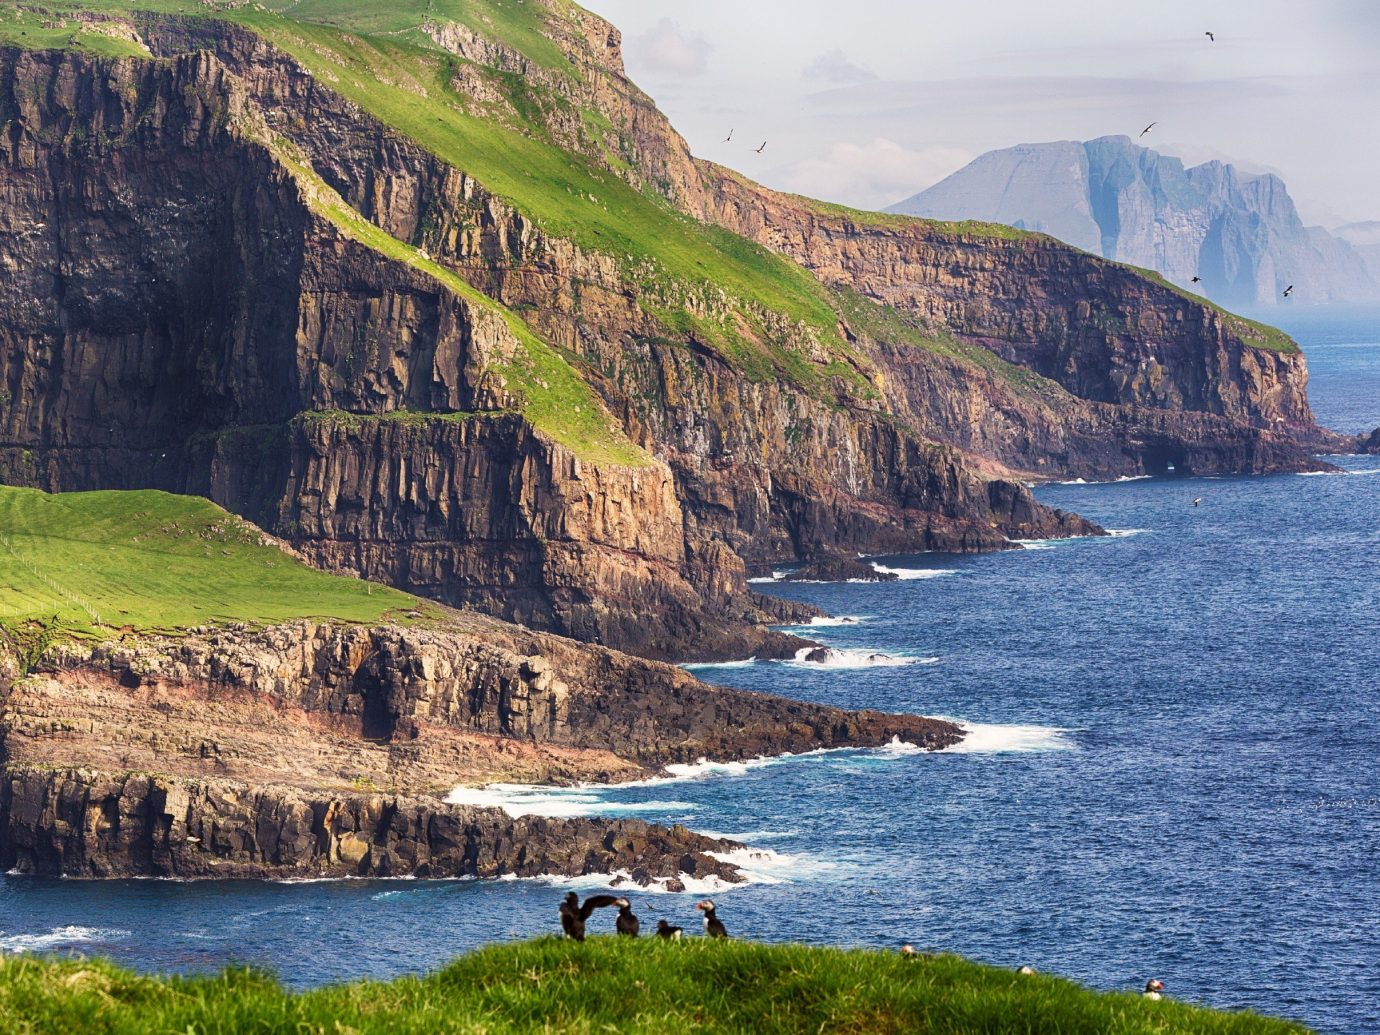 Offbeat mountain water outdoor Nature grass Coast cliff geographical feature landform Sea rock body of water fjord Lake animal terrain bay River Ocean vacation cape loch landscape cove islet hillside pond surrounded